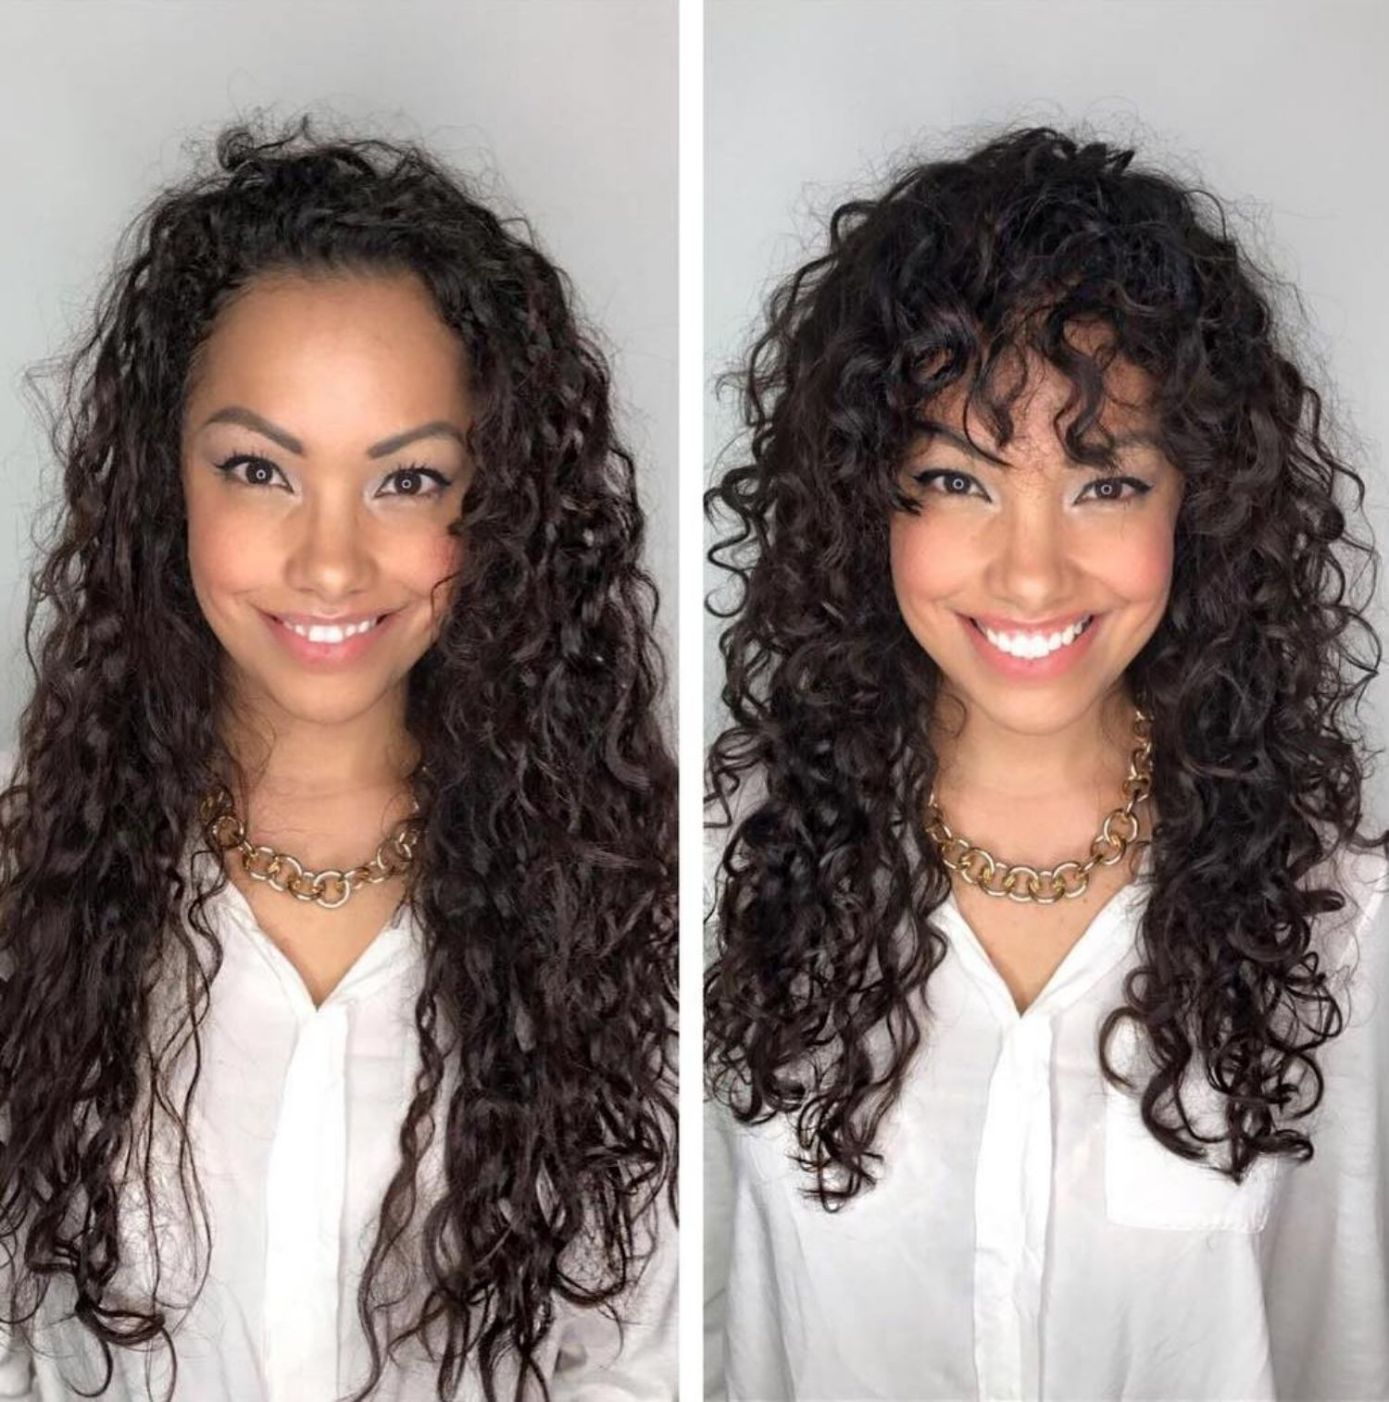 Greatest Curly Hair With Bangs Long Hairstyles Curly Hair Styles Long Hair Styles Men Curly Hair Fringe